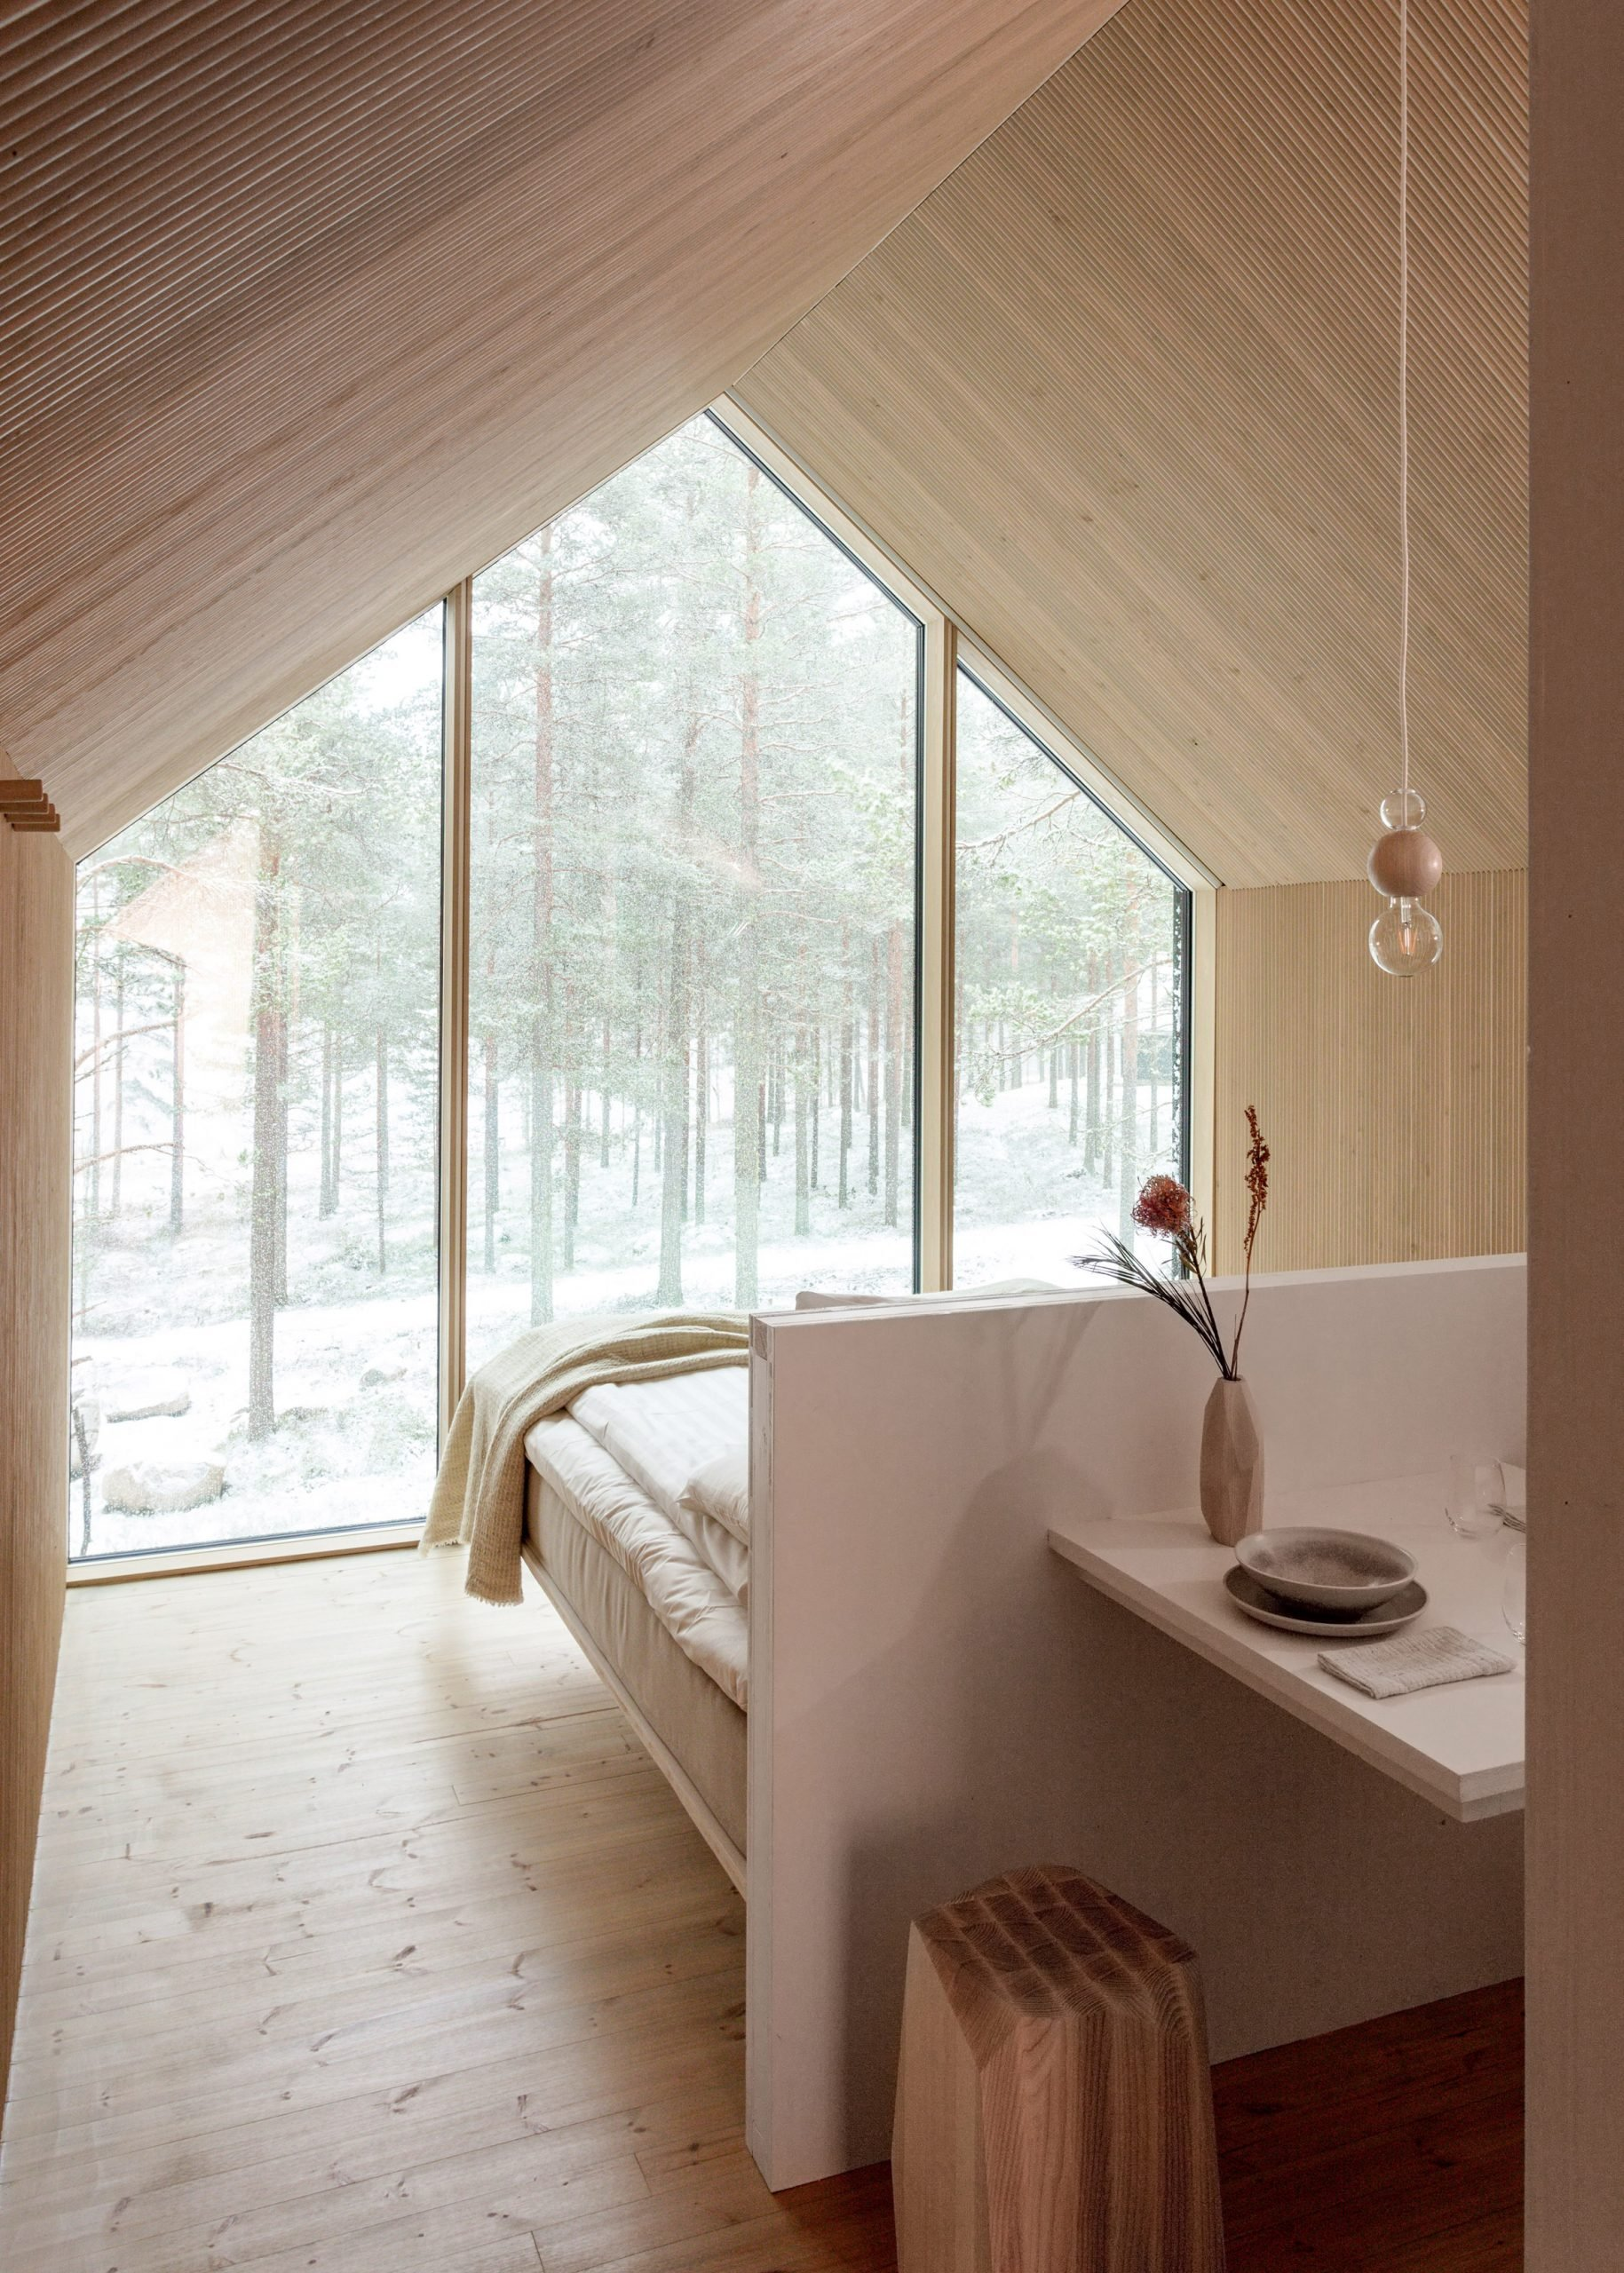 The light-wood interiors of a woodland cabin in Finland